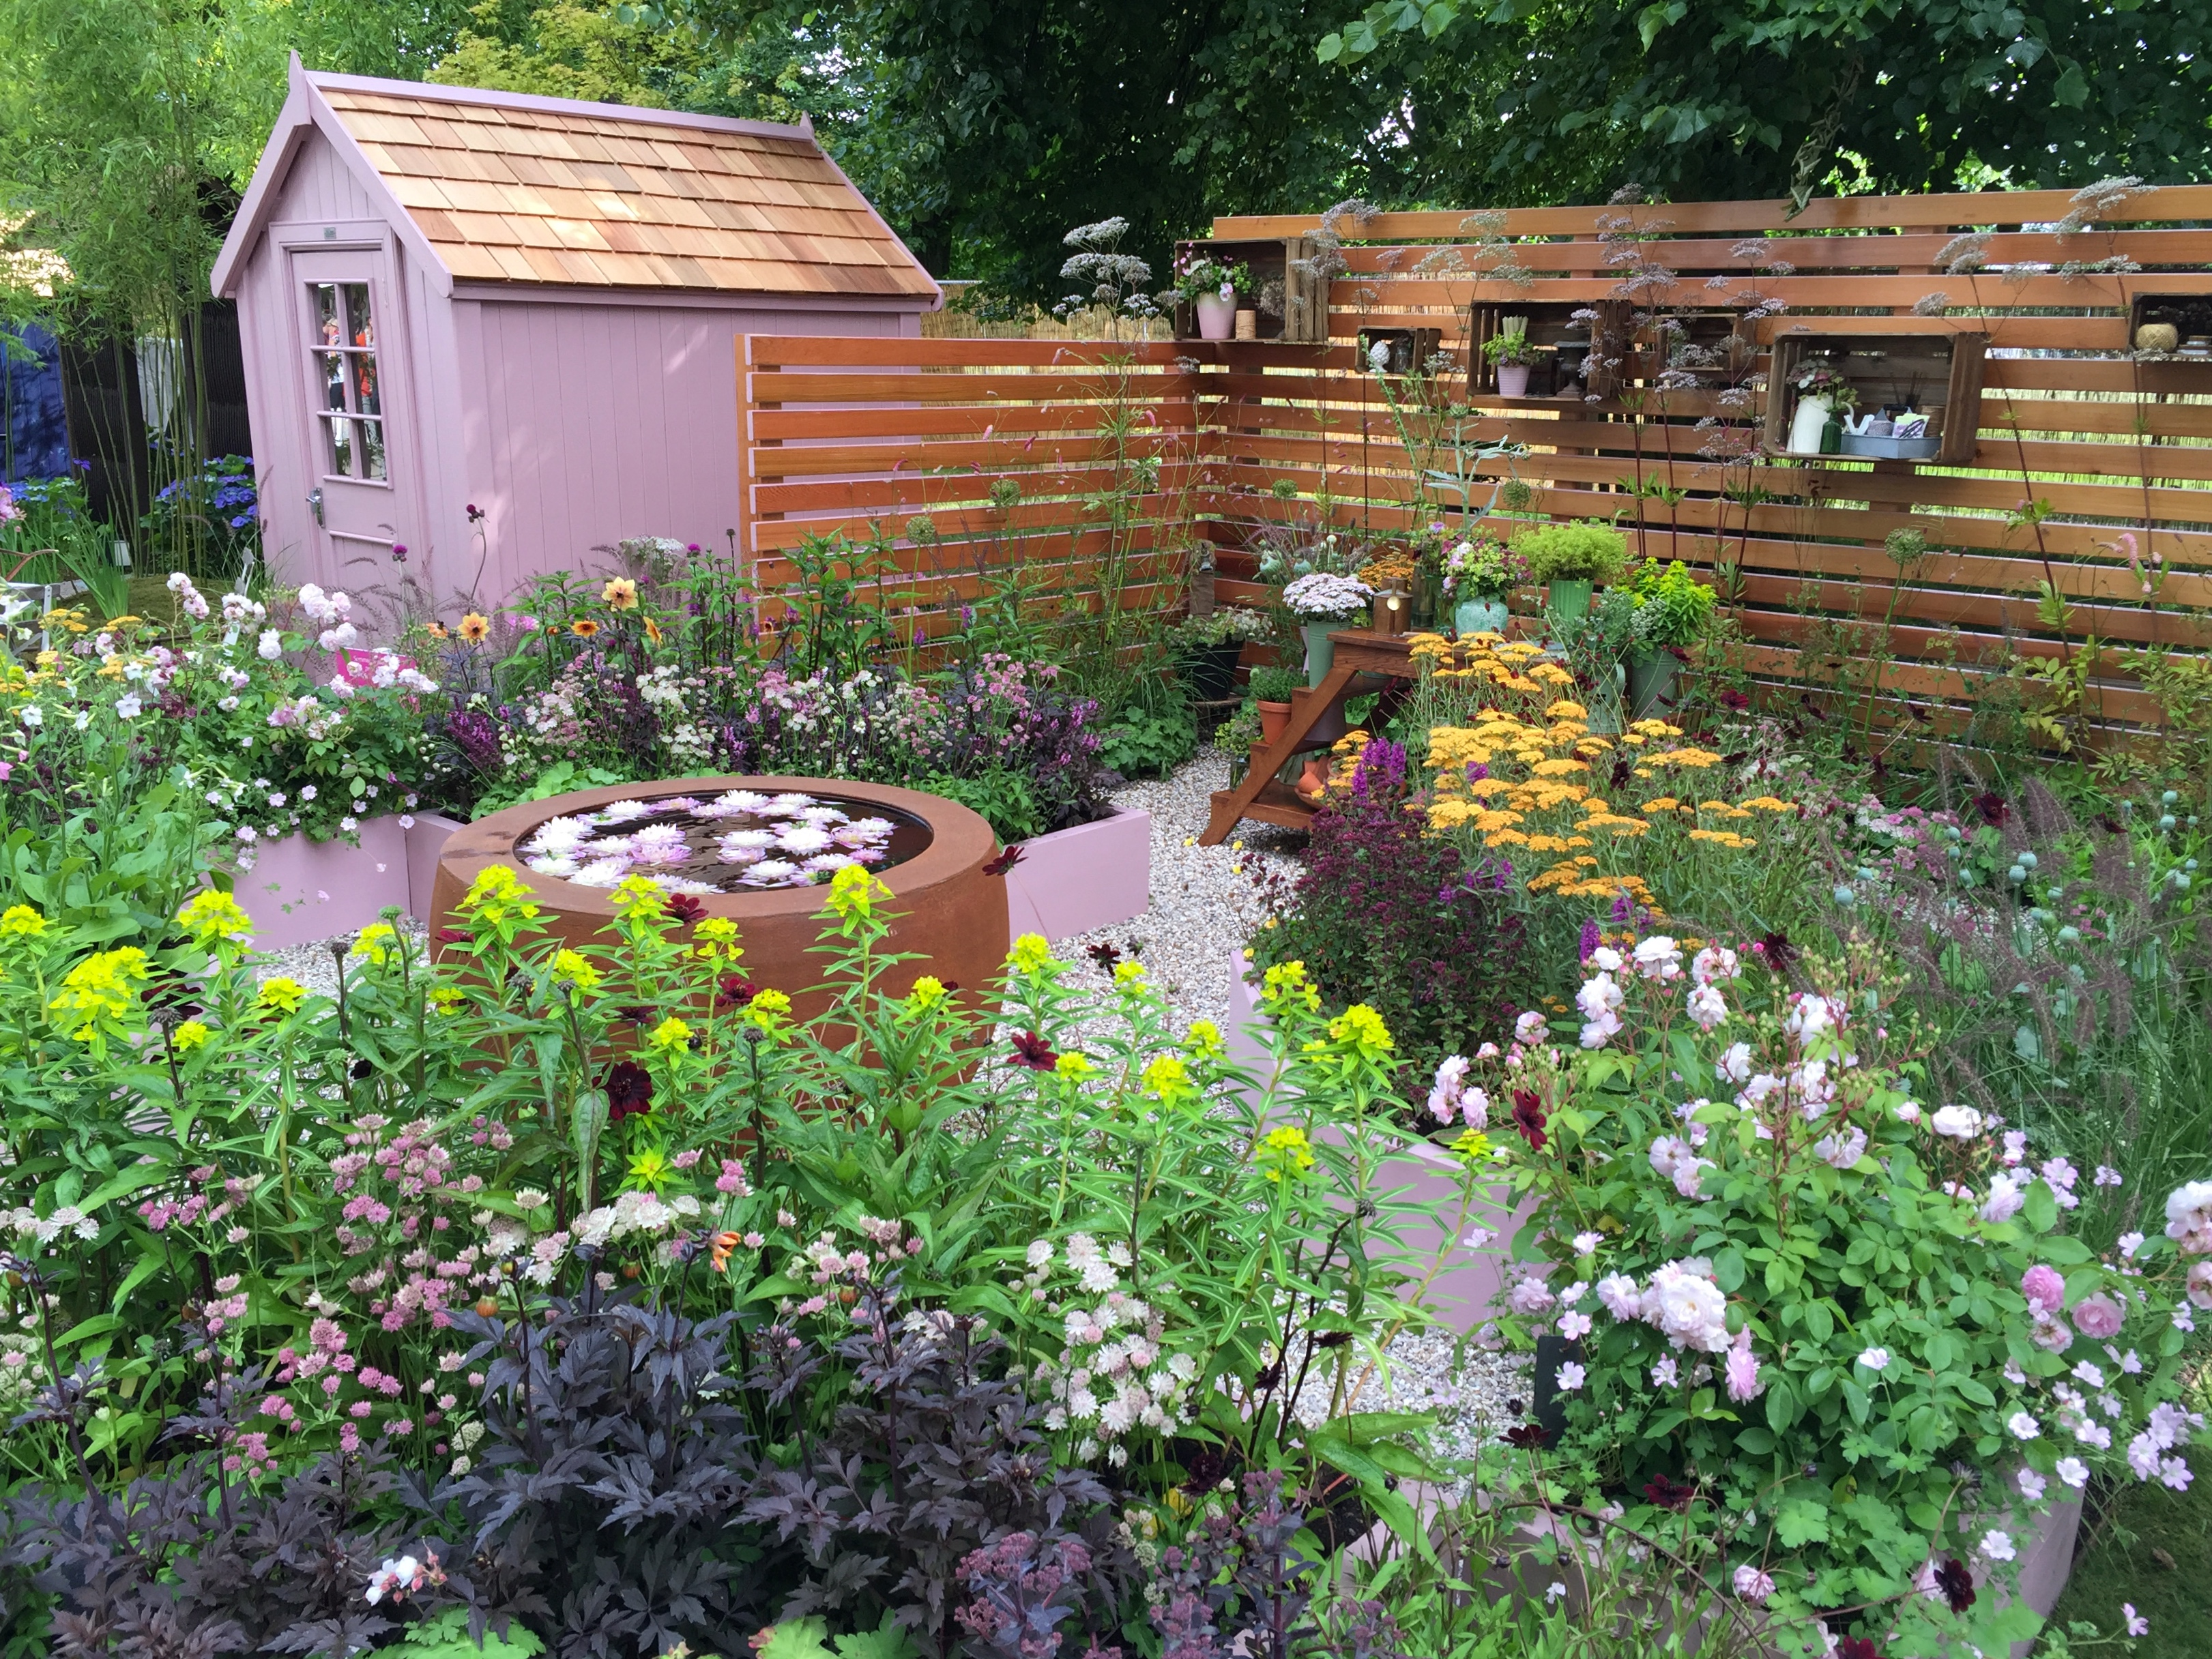 Hampton court palace flower show 2016 show gardens part i the frustrated gardener - Hampton court flower show ...